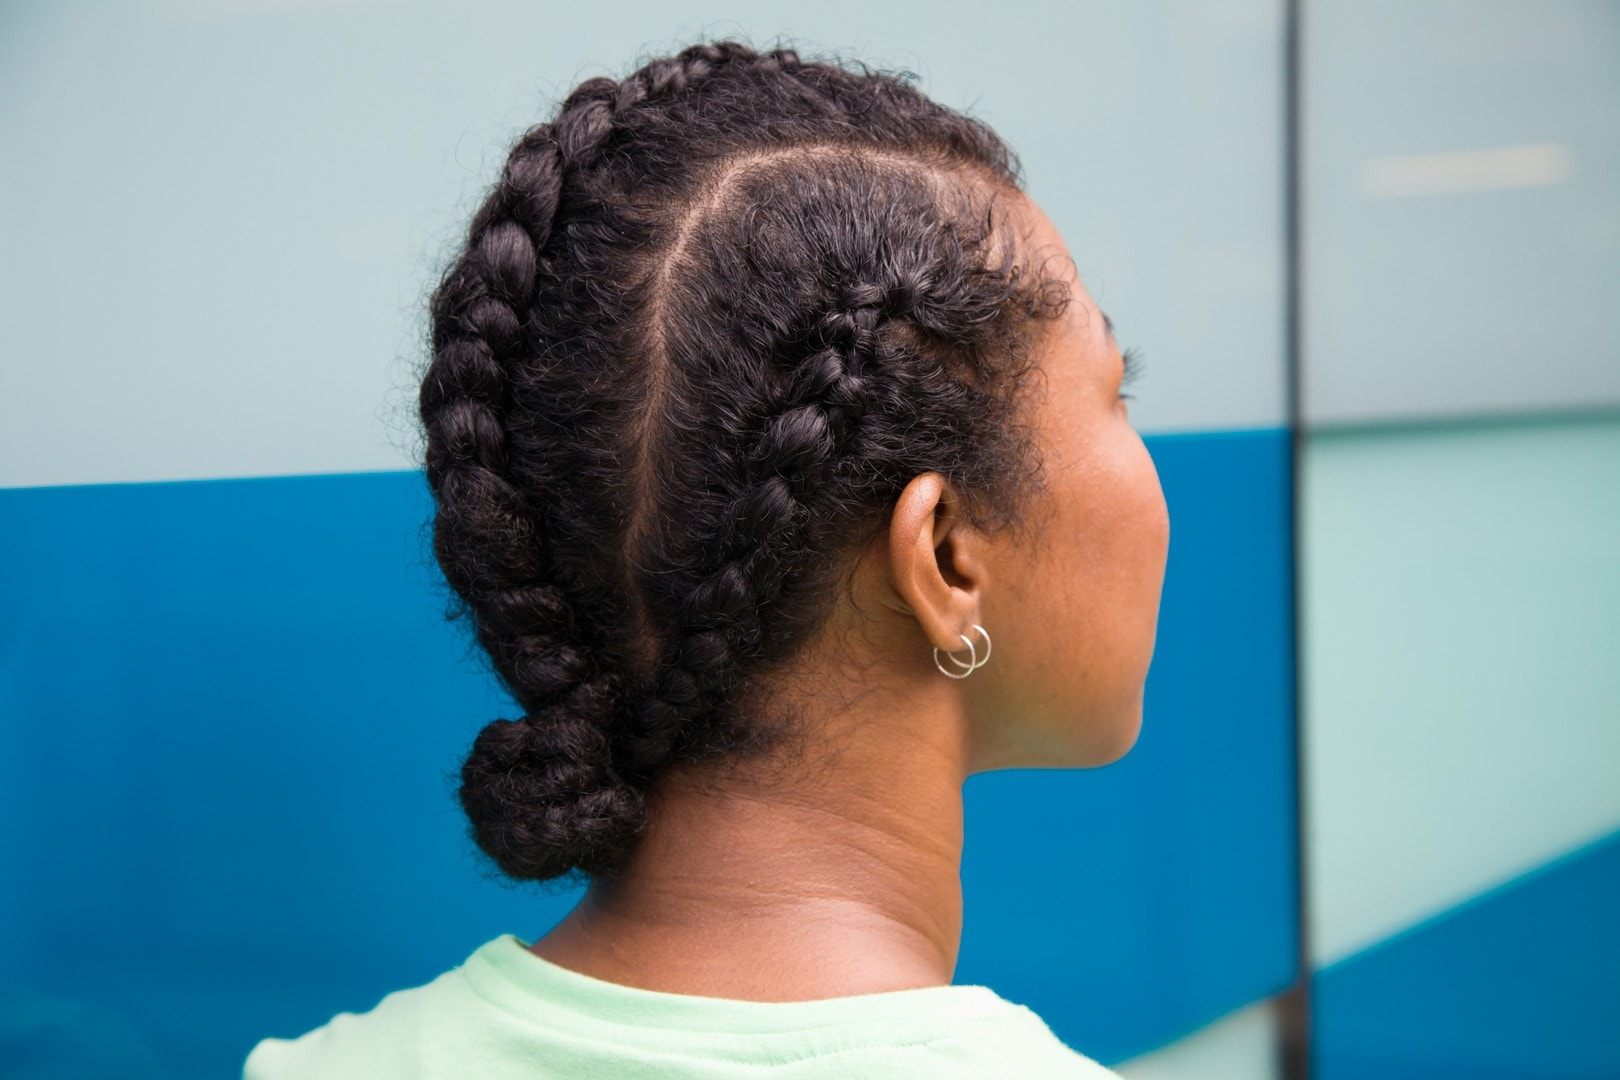 cornrow styles: the black view of a young woman with chunky cornrow braids